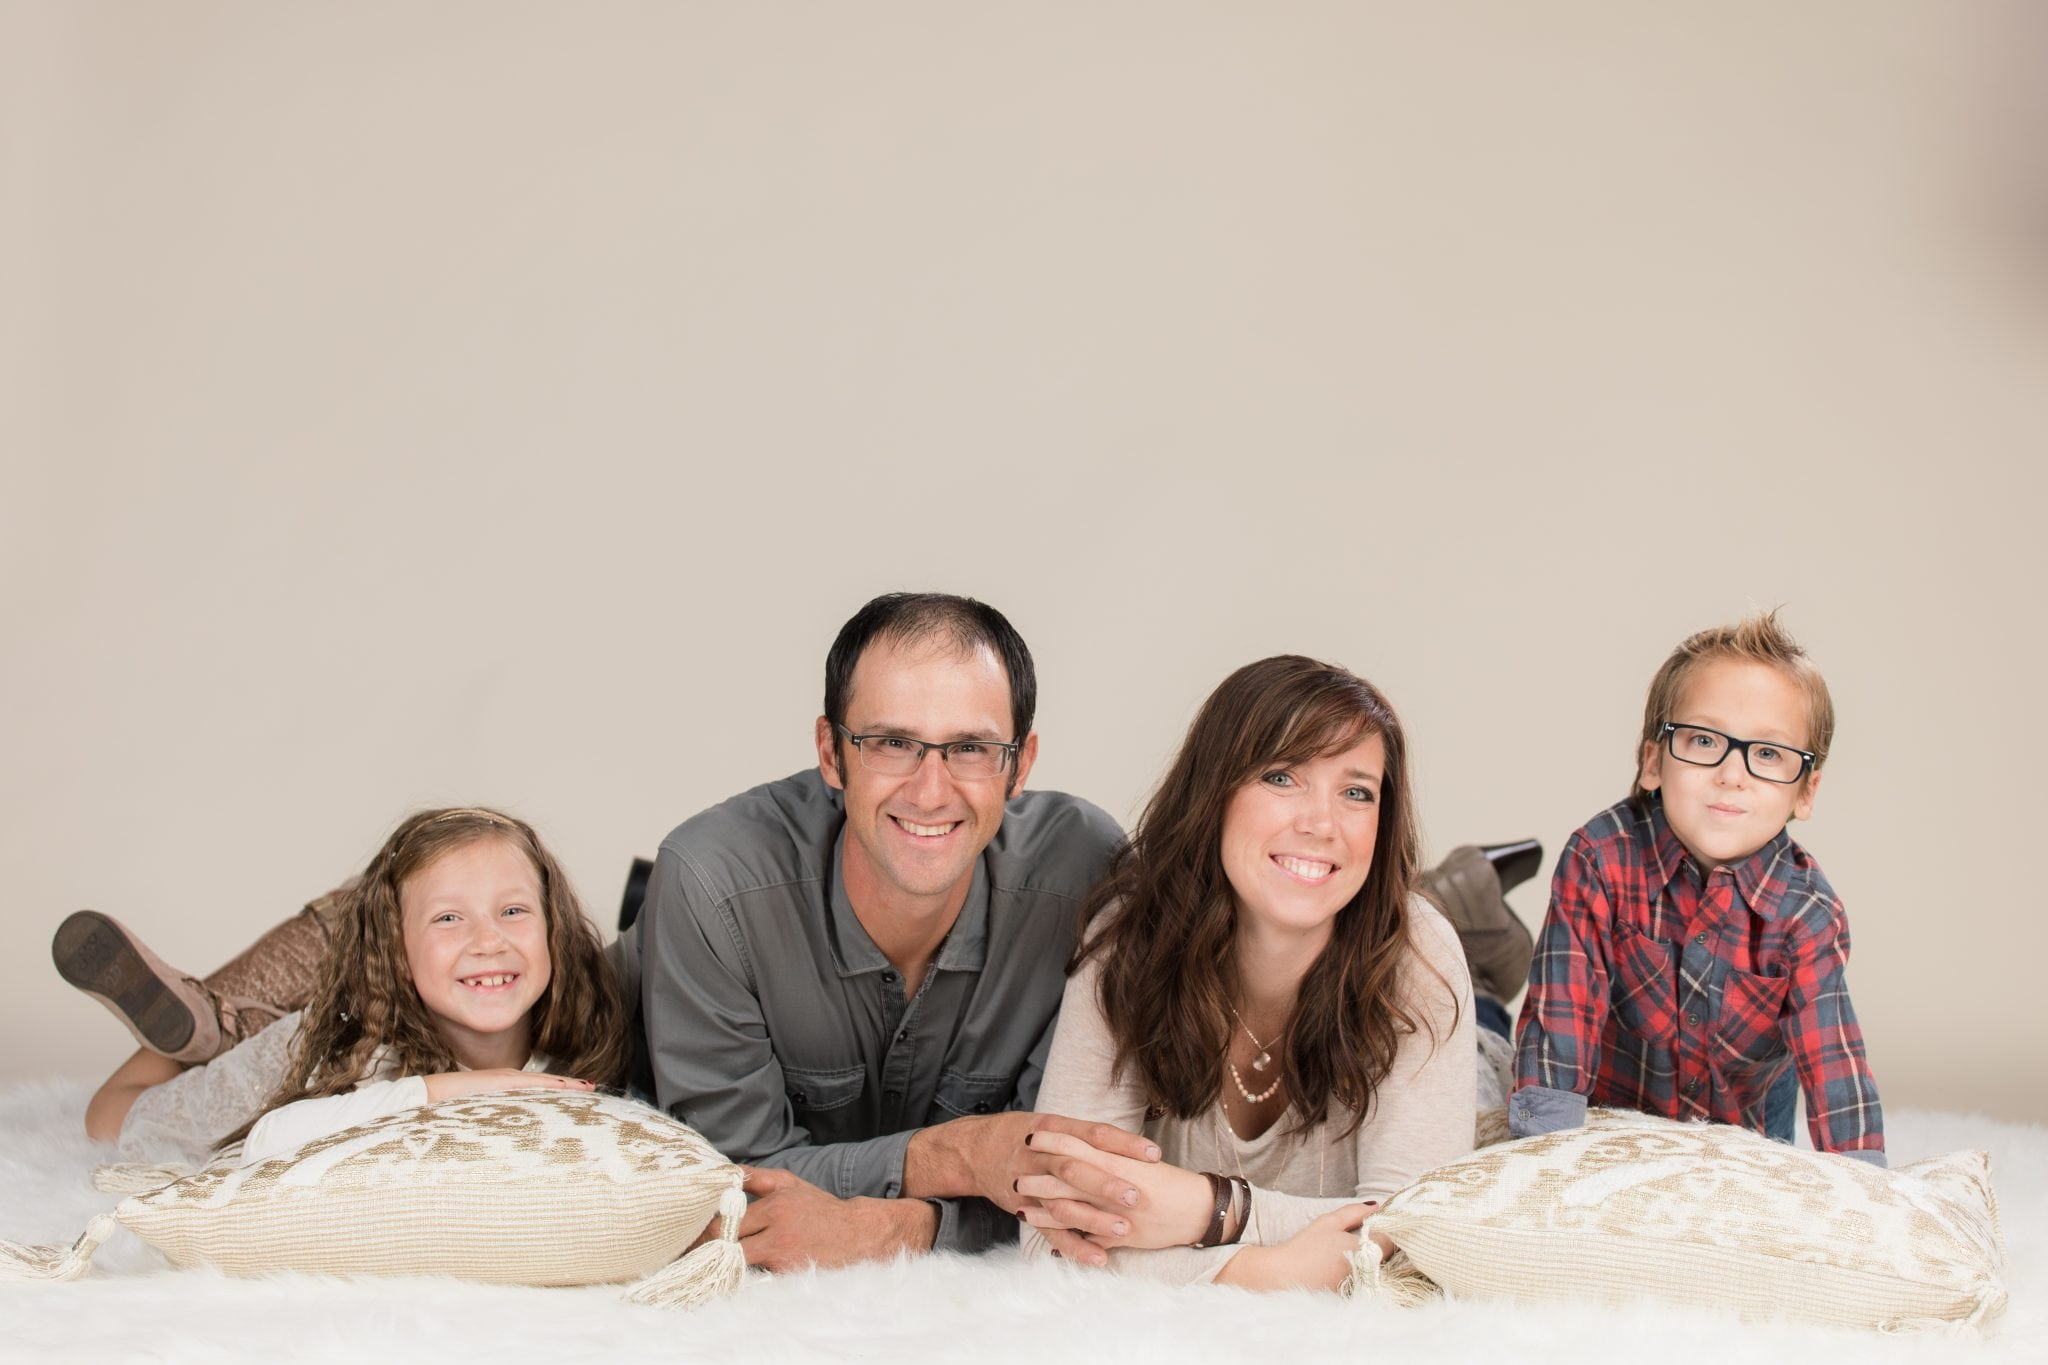 Family Photographer Berks County PA Studio